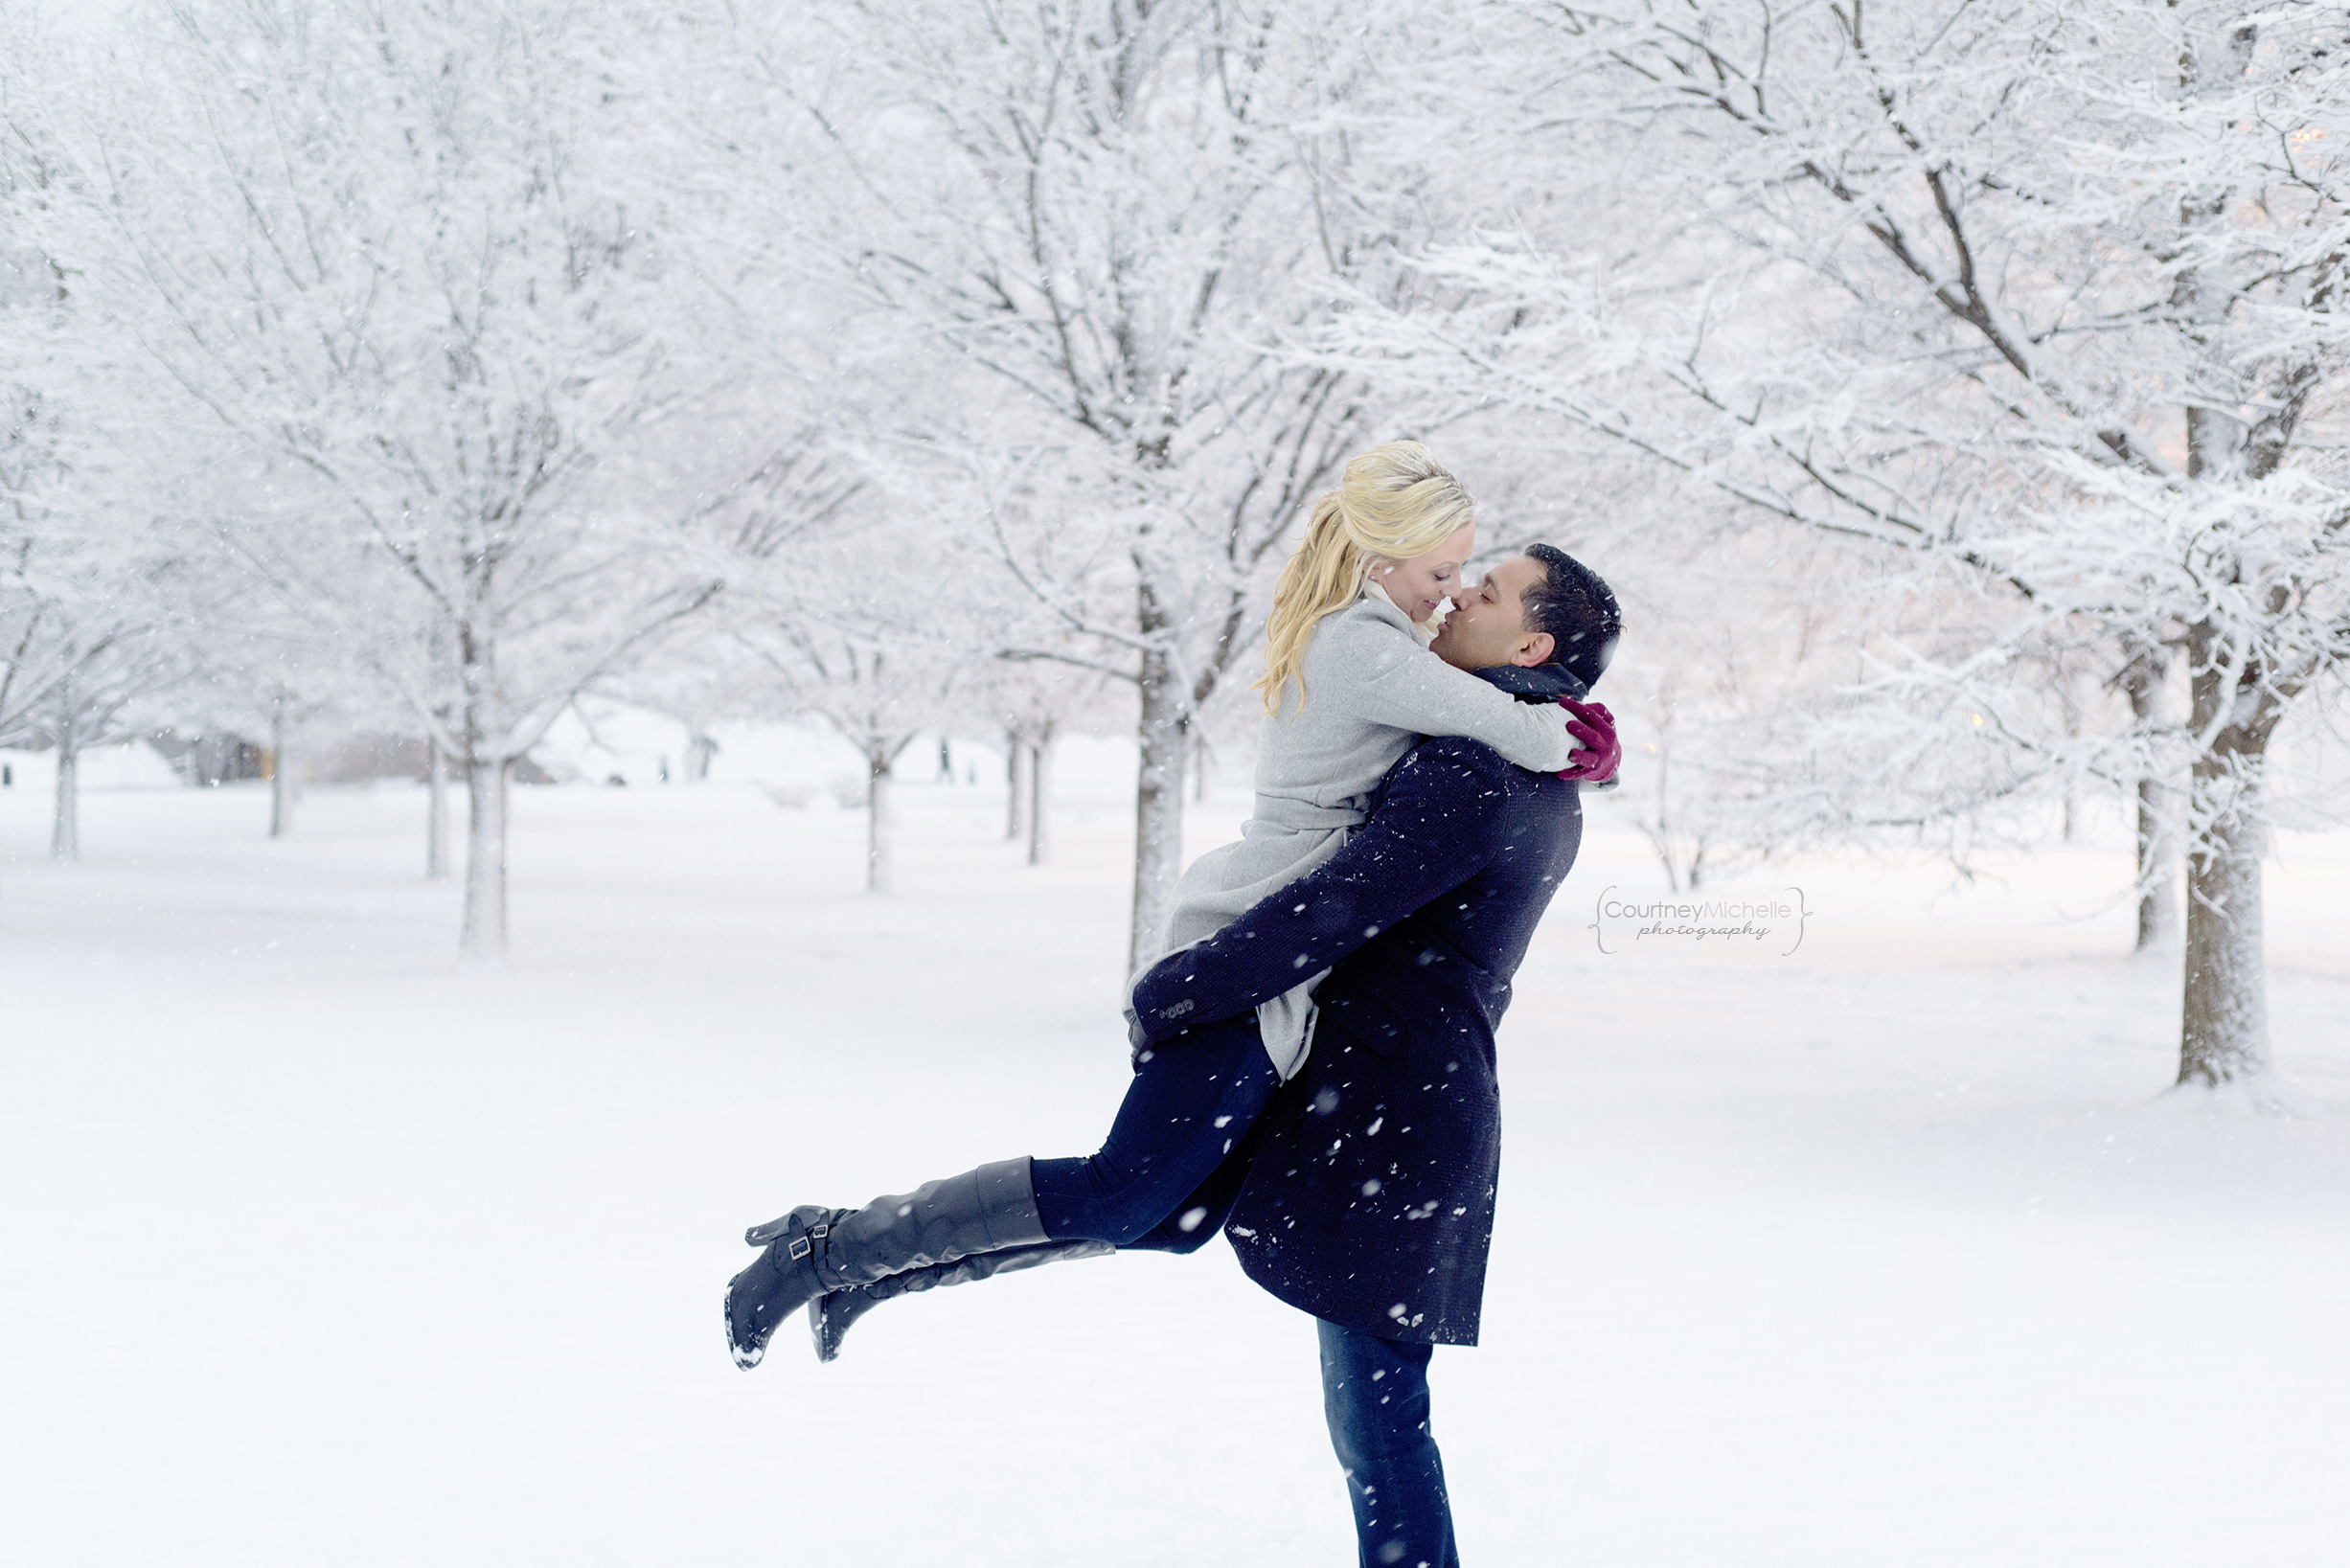 snowy-chicago-engagement-photography-museum-campus-twirling-in-snow-courtney-laper©COPYRIGHTCMP-3521.jpg